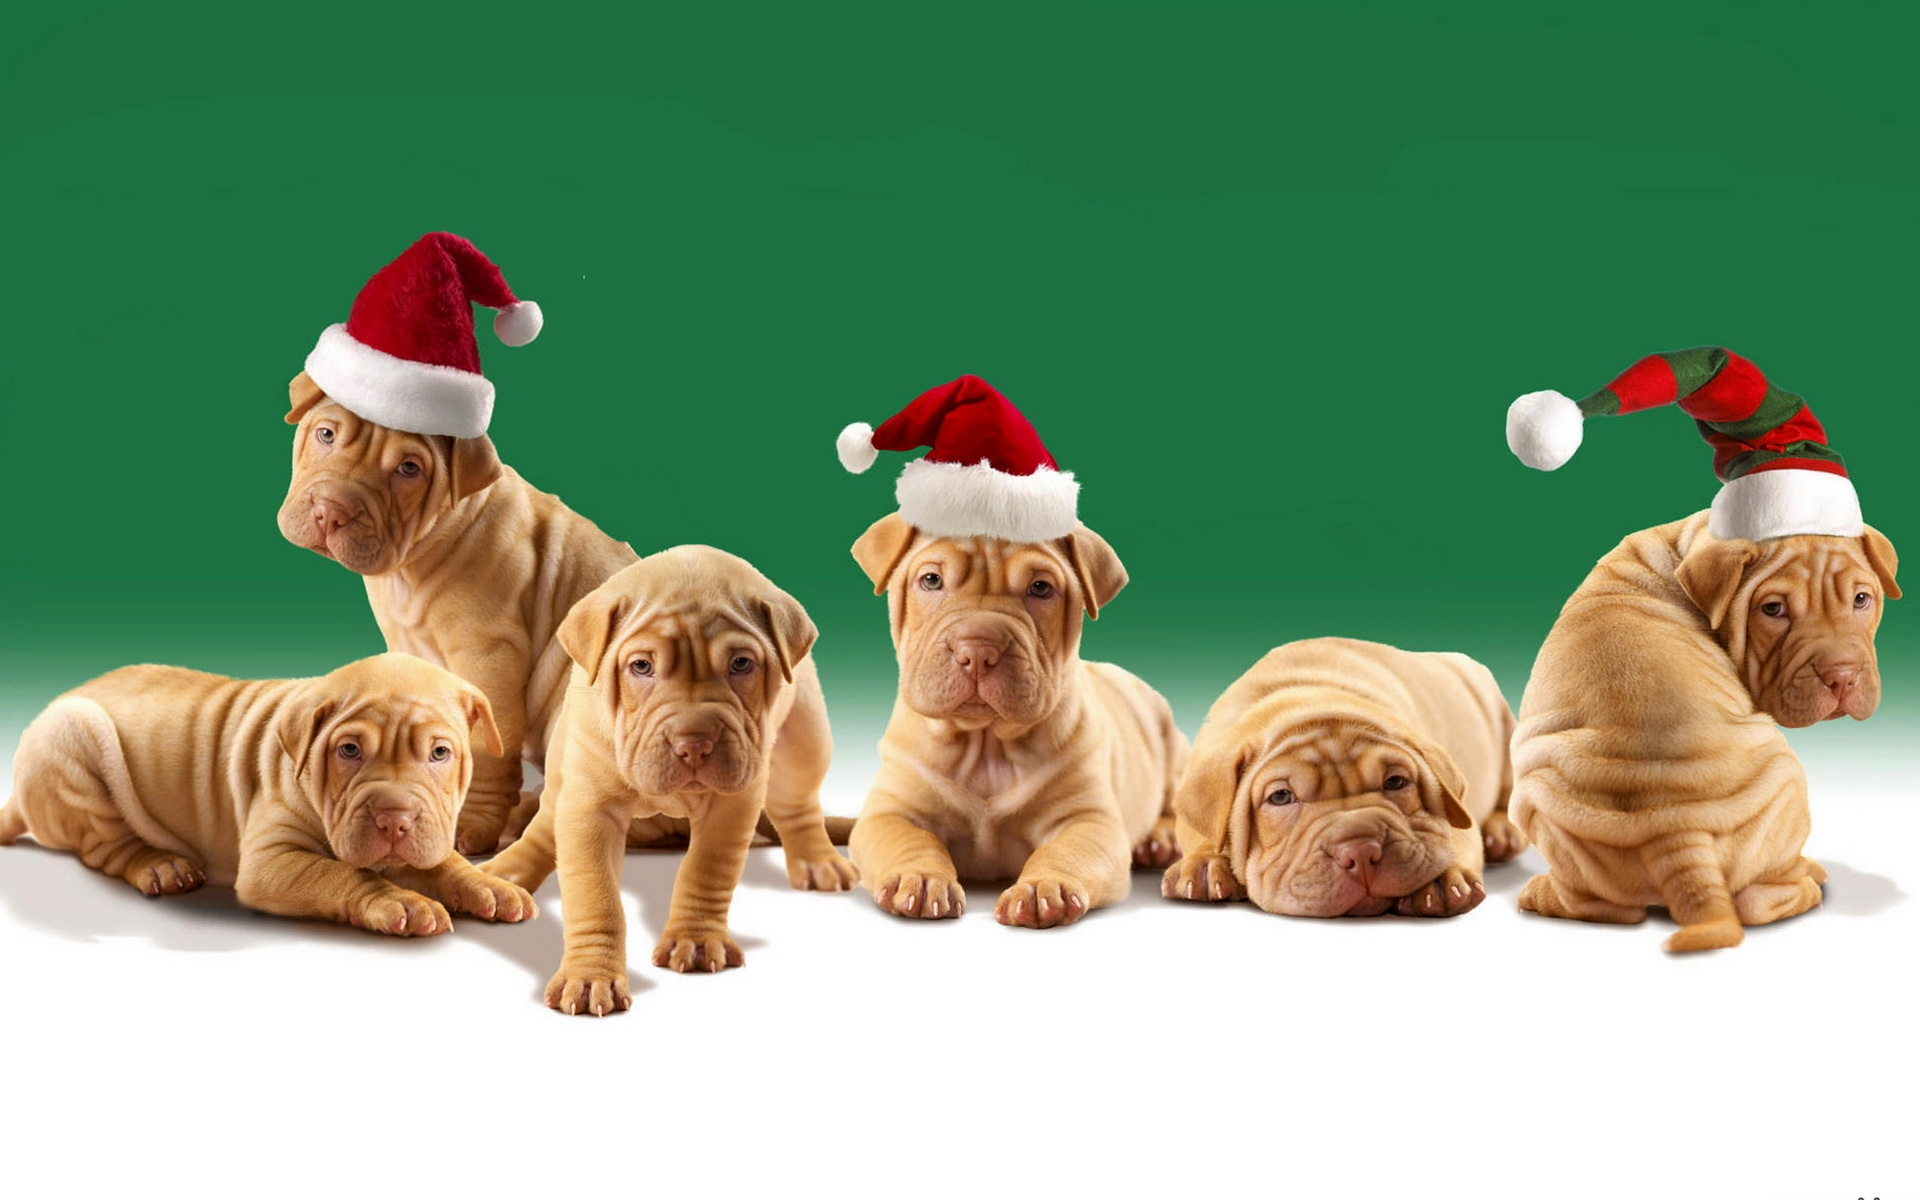 shar pei puppies in Christmas hats